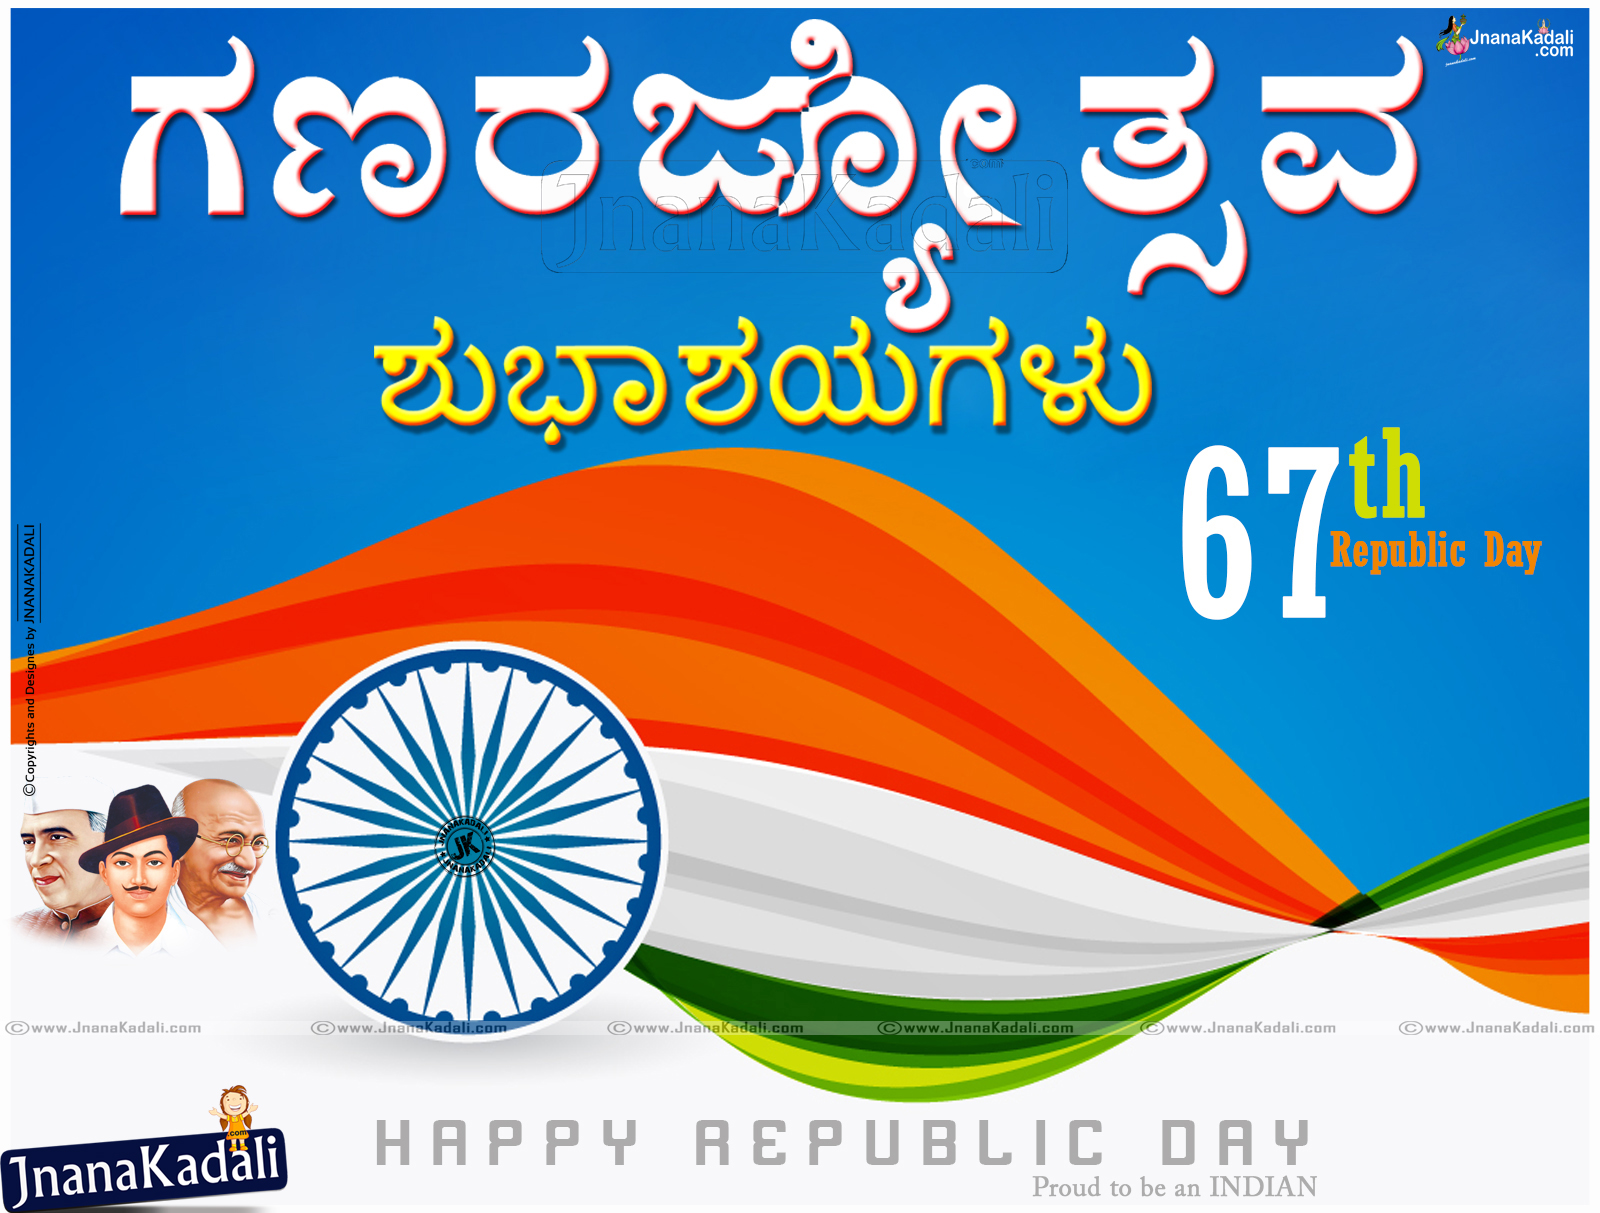 independence day essay in kannada Independence day independence day at the stroke of the midnight hour, when the world sleeps, india will awake to life and freedom a moment comes, which comes but rarely in history, when we step out from the old to the newindia discovers herself again.